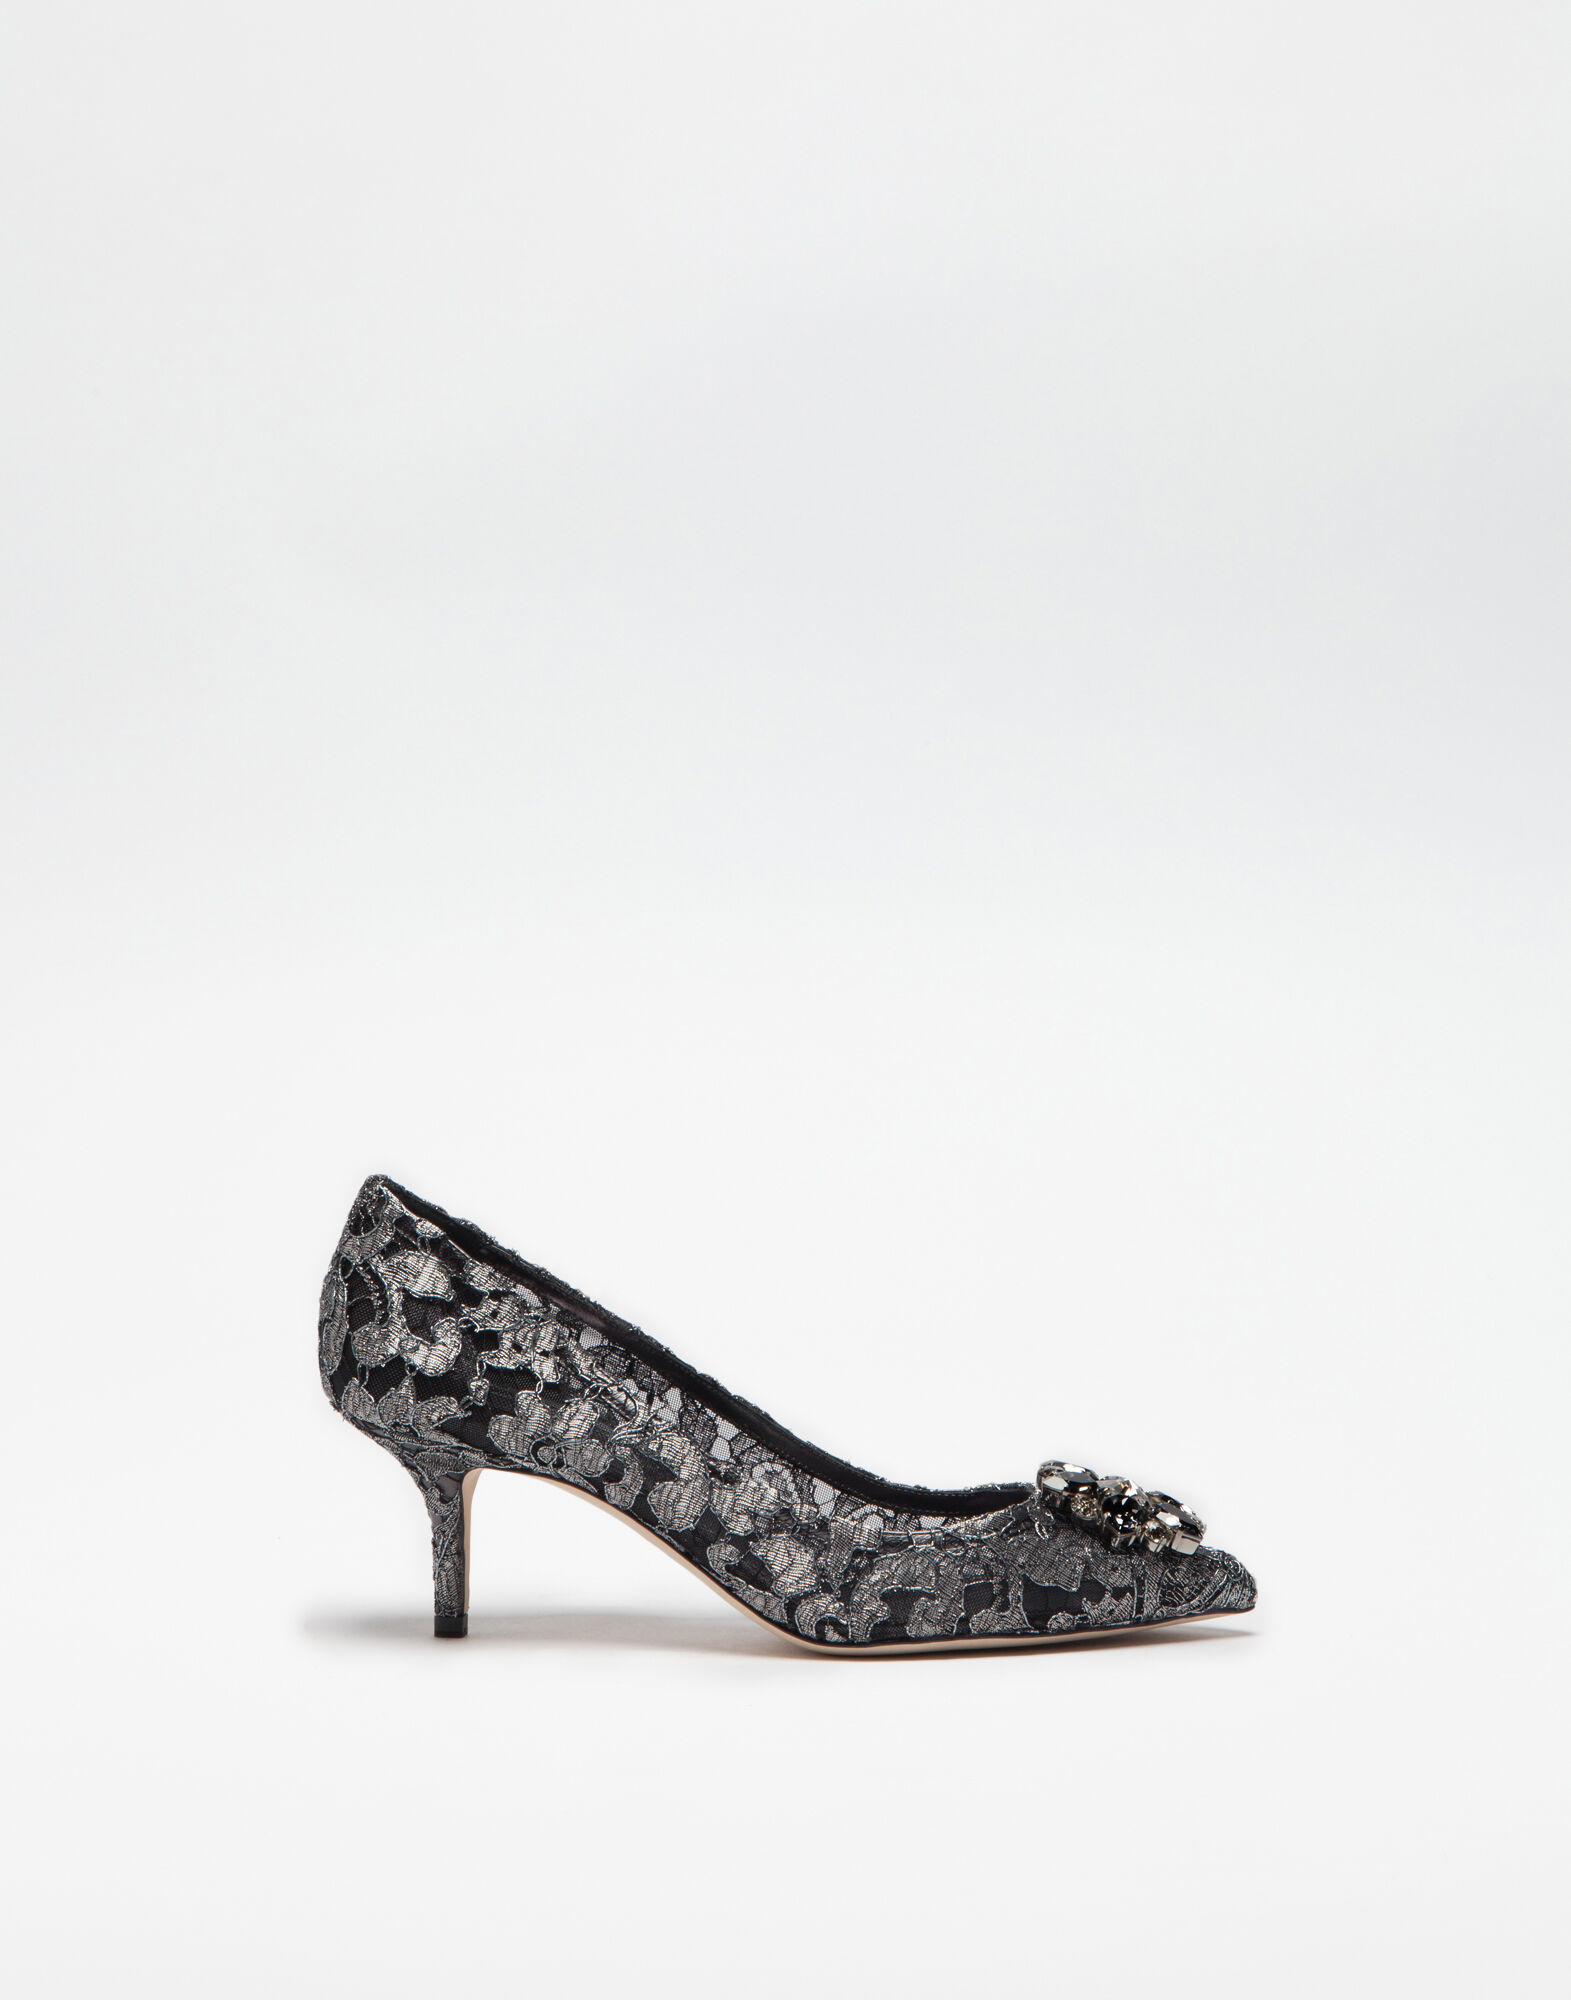 PUMP IN TAORMINA LUREX LACE WITH CRYSTALS